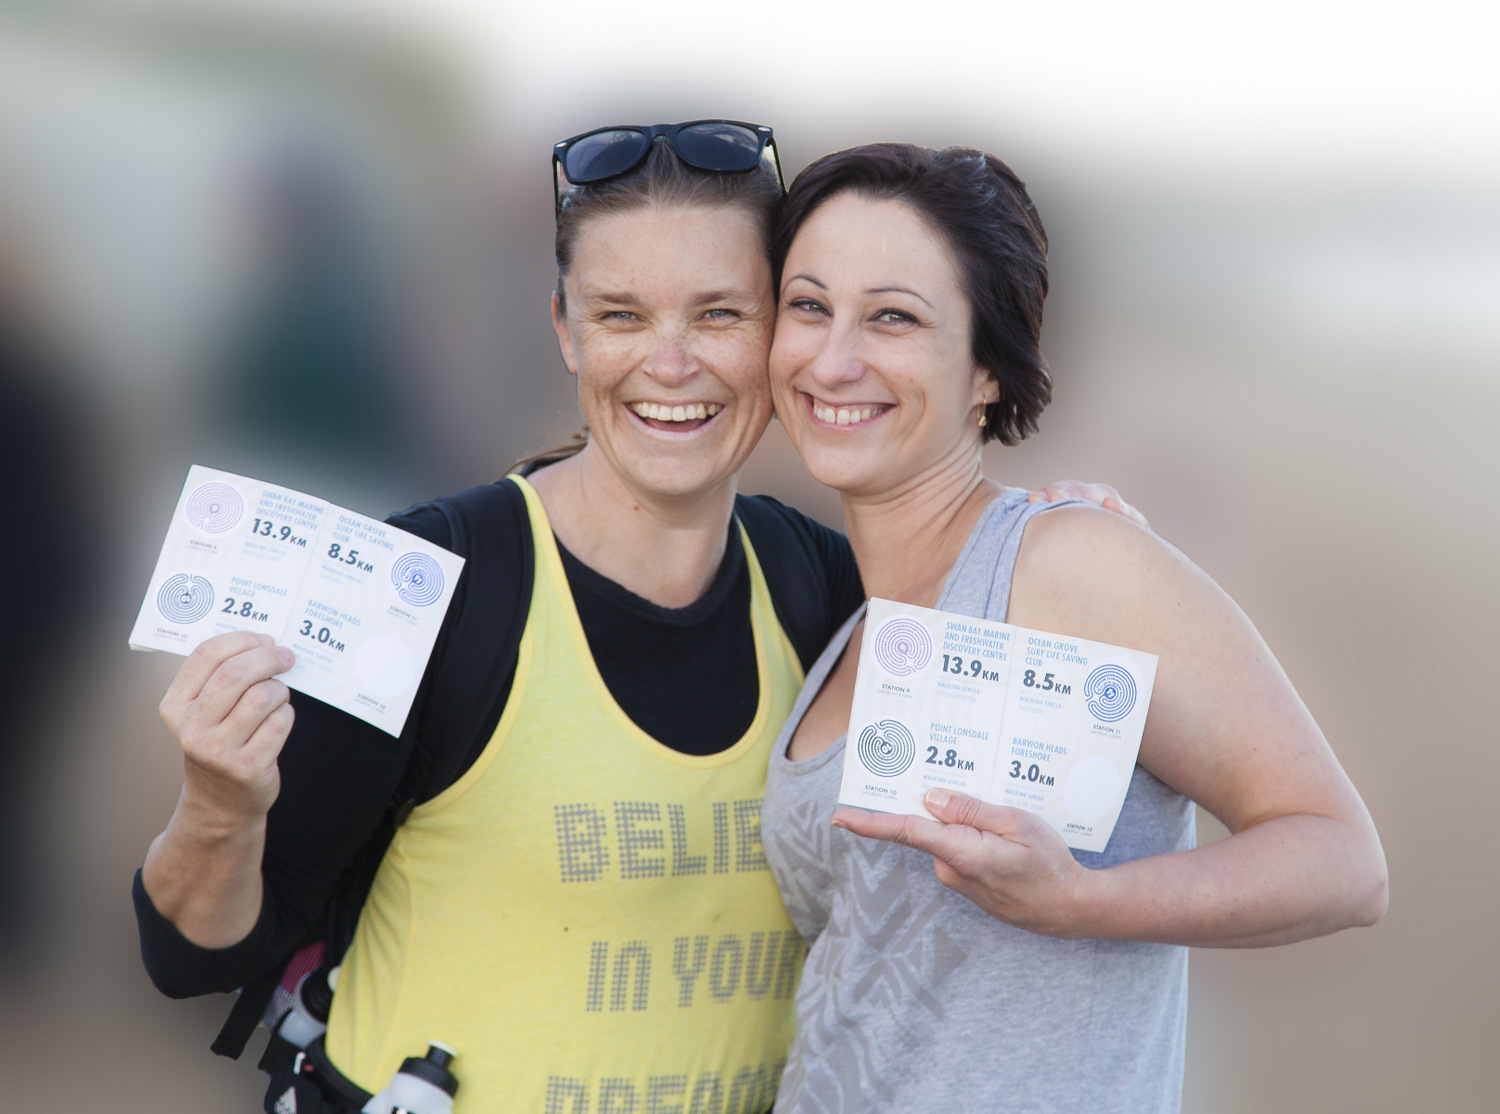 M~M2014 walkers at the finish line. Image: G Mourney.